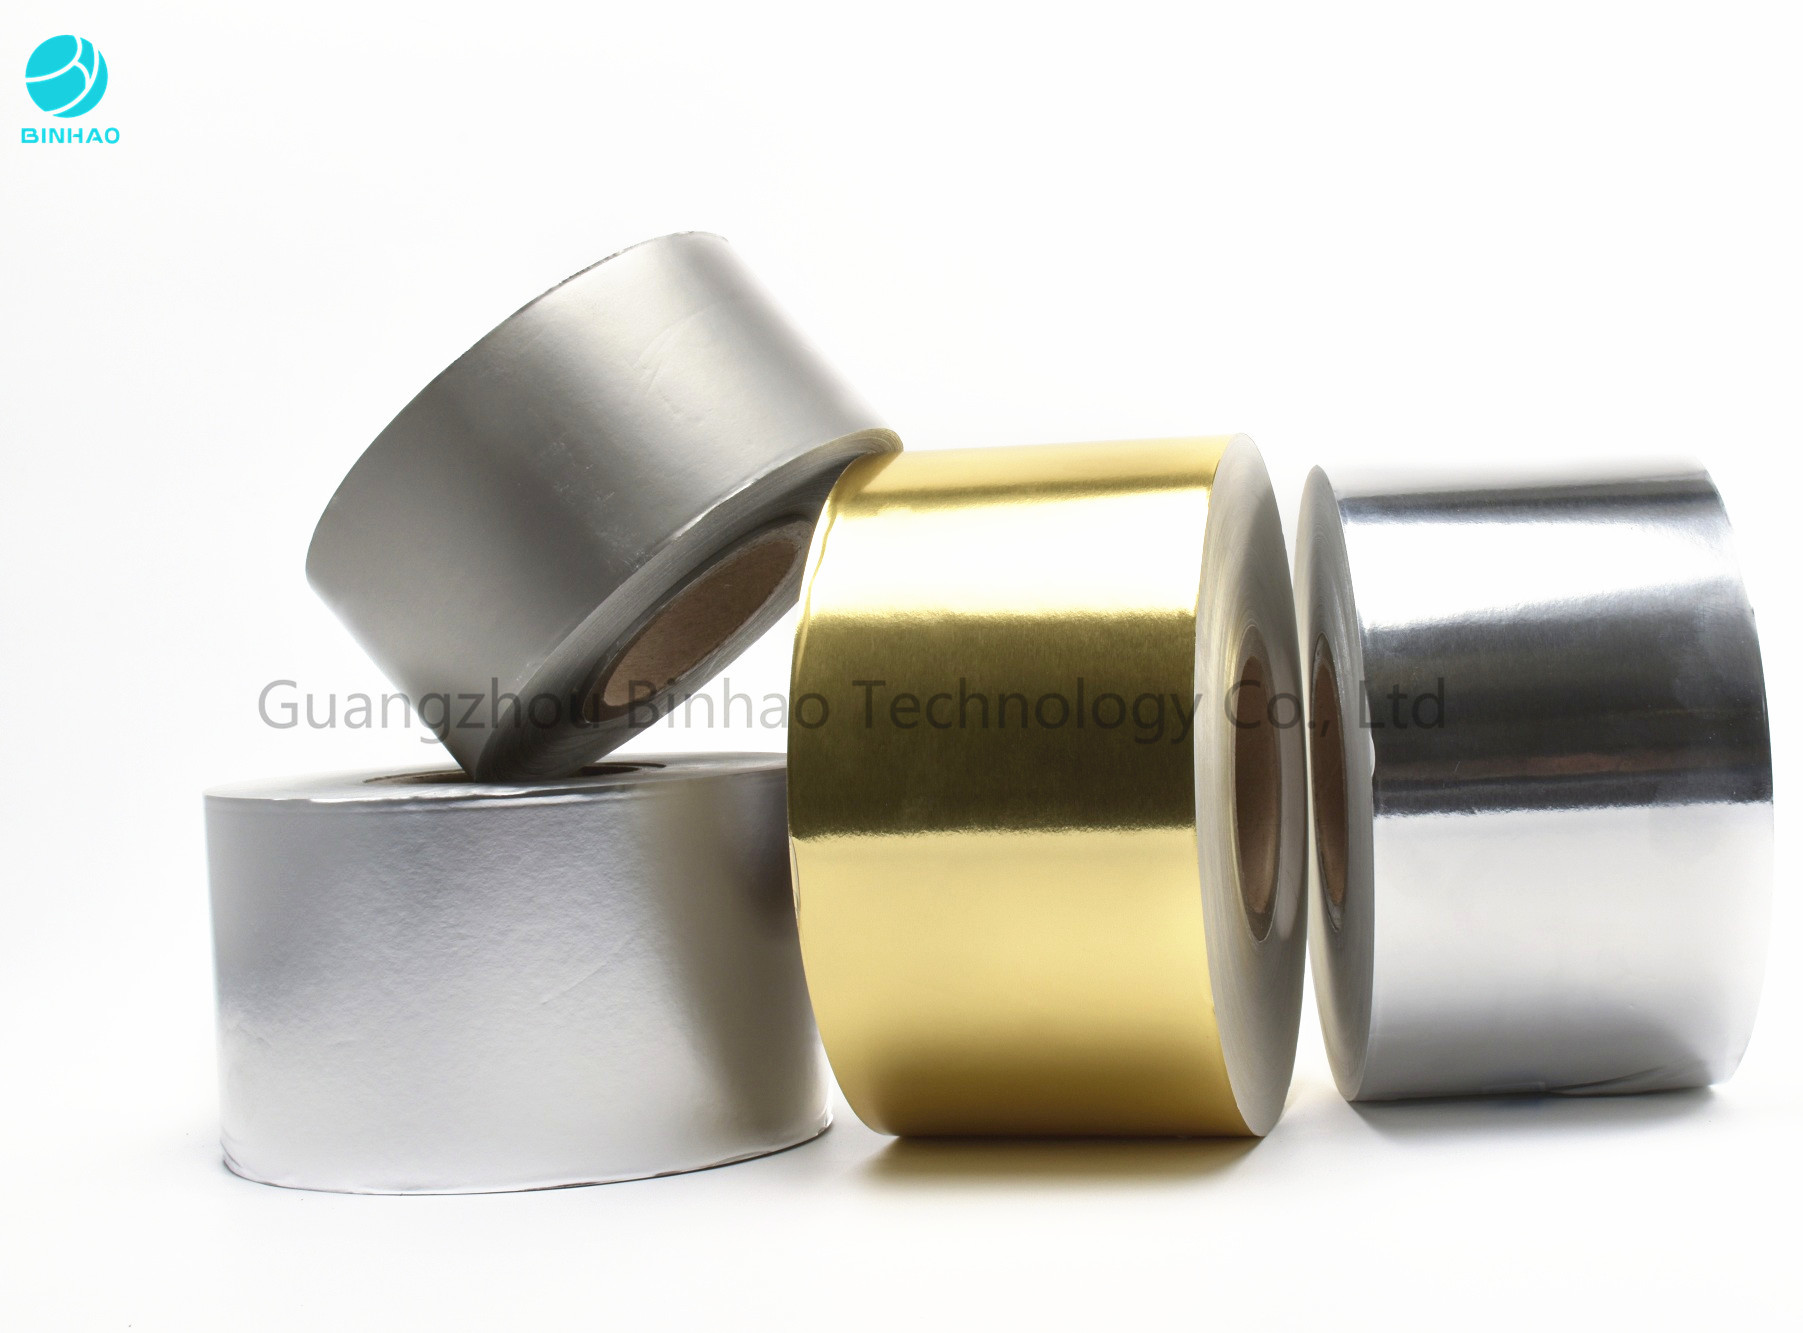 Matt Embossing Gold Silver Aluminium Foil Wrapping Paper In 1500m Bobbin For Cigarette Packaging